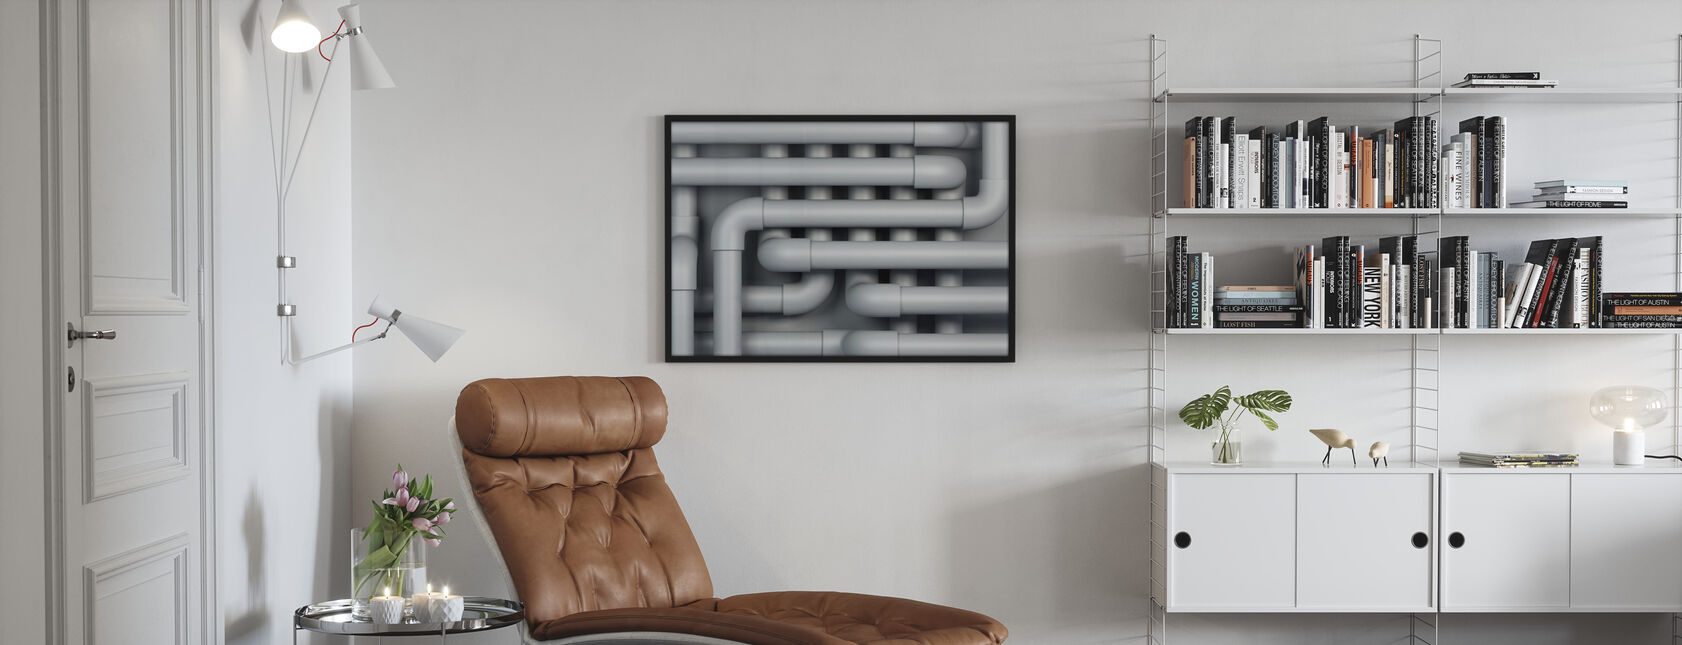 Drain Pipes - Poster - Living Room